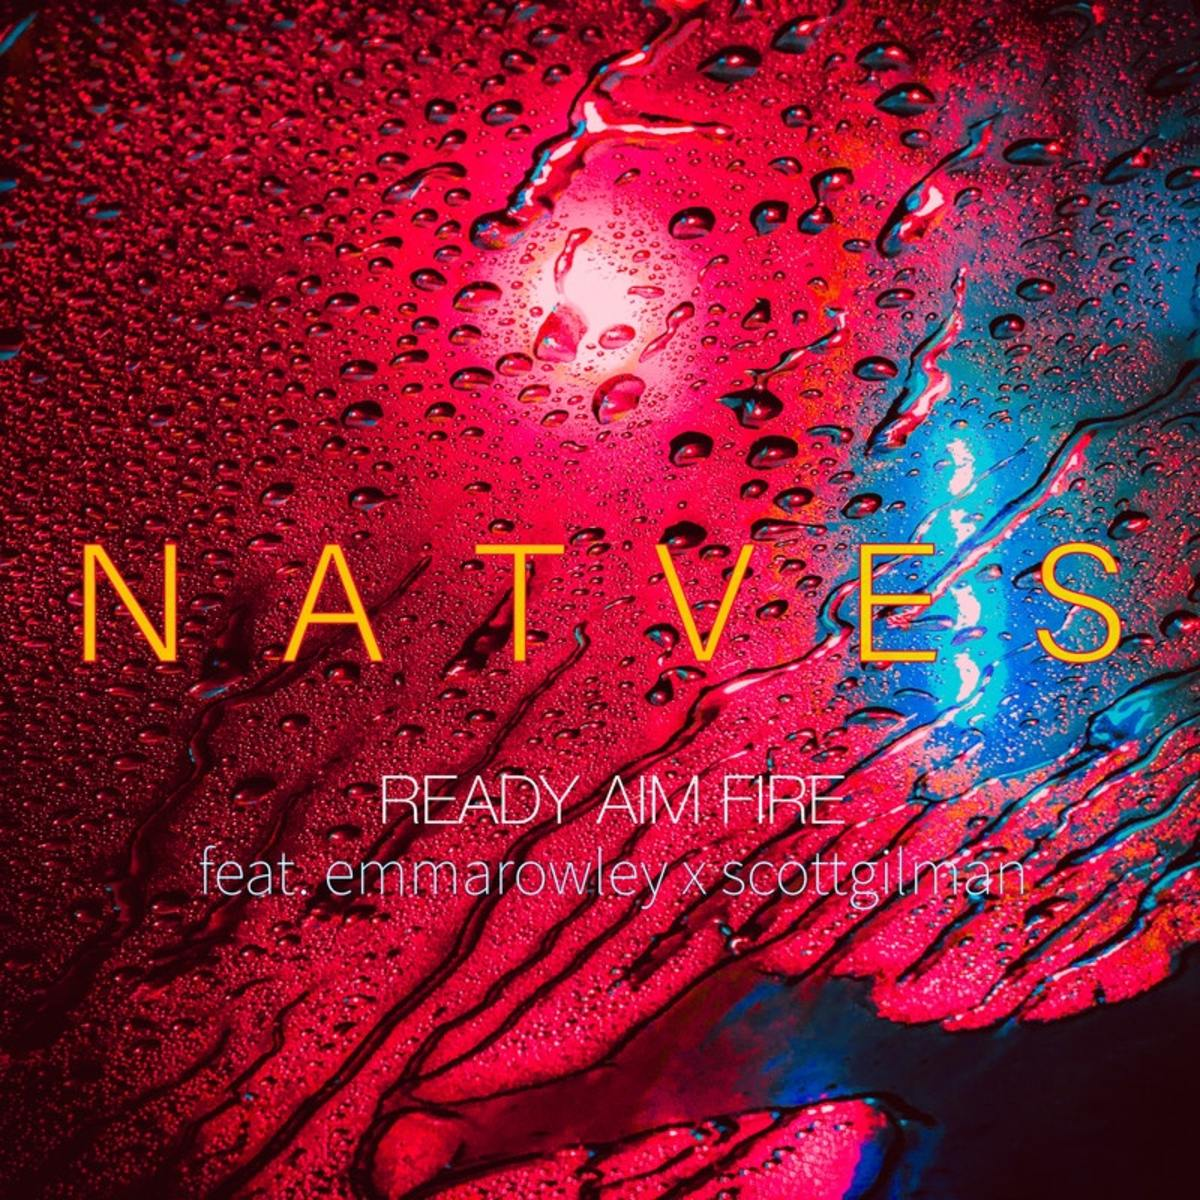 synth-single-review-ready-aim-fire-by-n-a-t-v-e-s